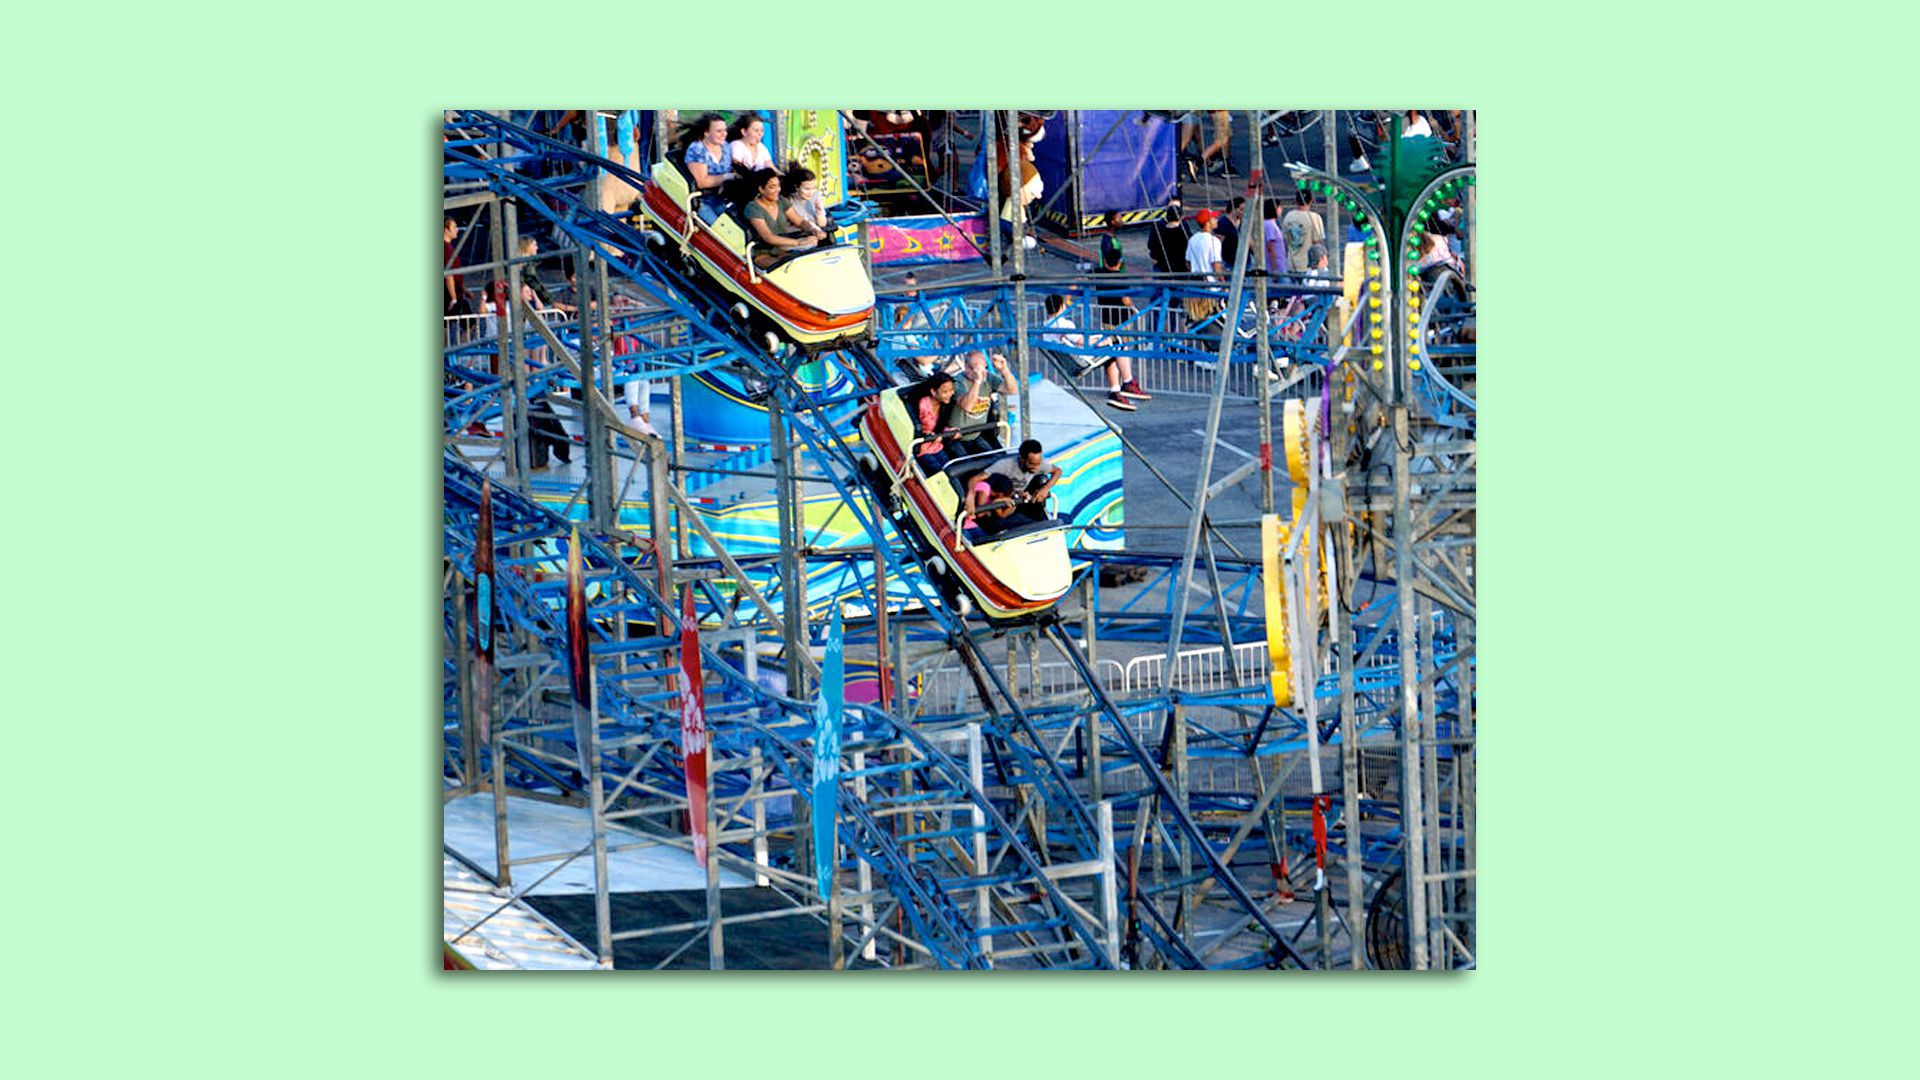 An image of a new roller coaster ride coming to the Minnesota State Fair this year.